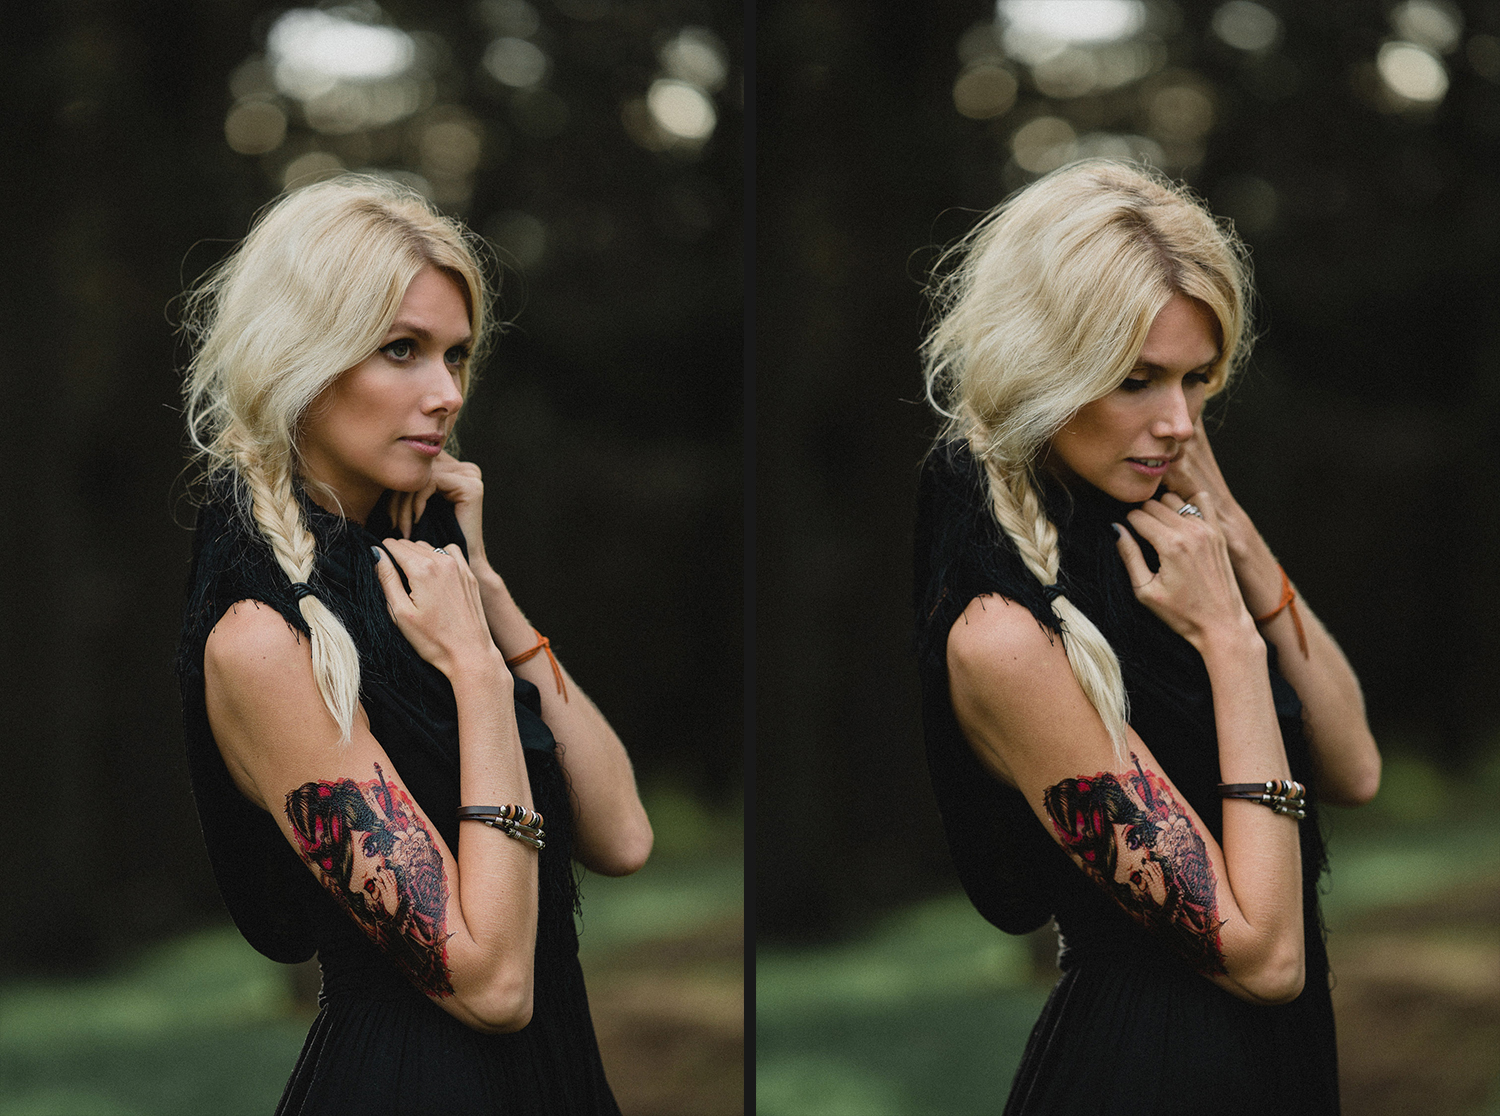 Image of a girl with golden hair and tattoo on arm